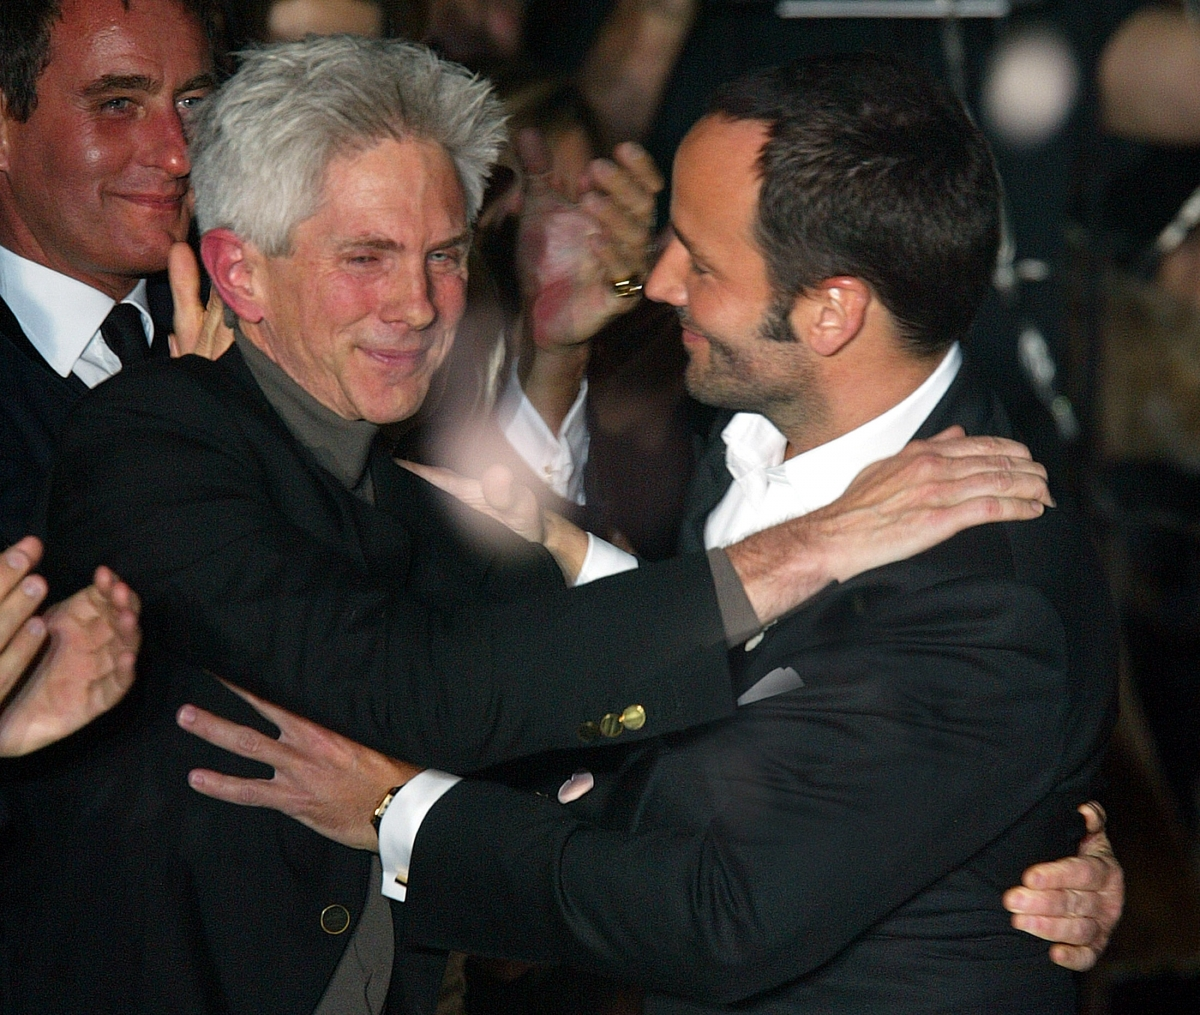 American fashion designer Tom Ford has married his longtime partner, Richard Buckley.